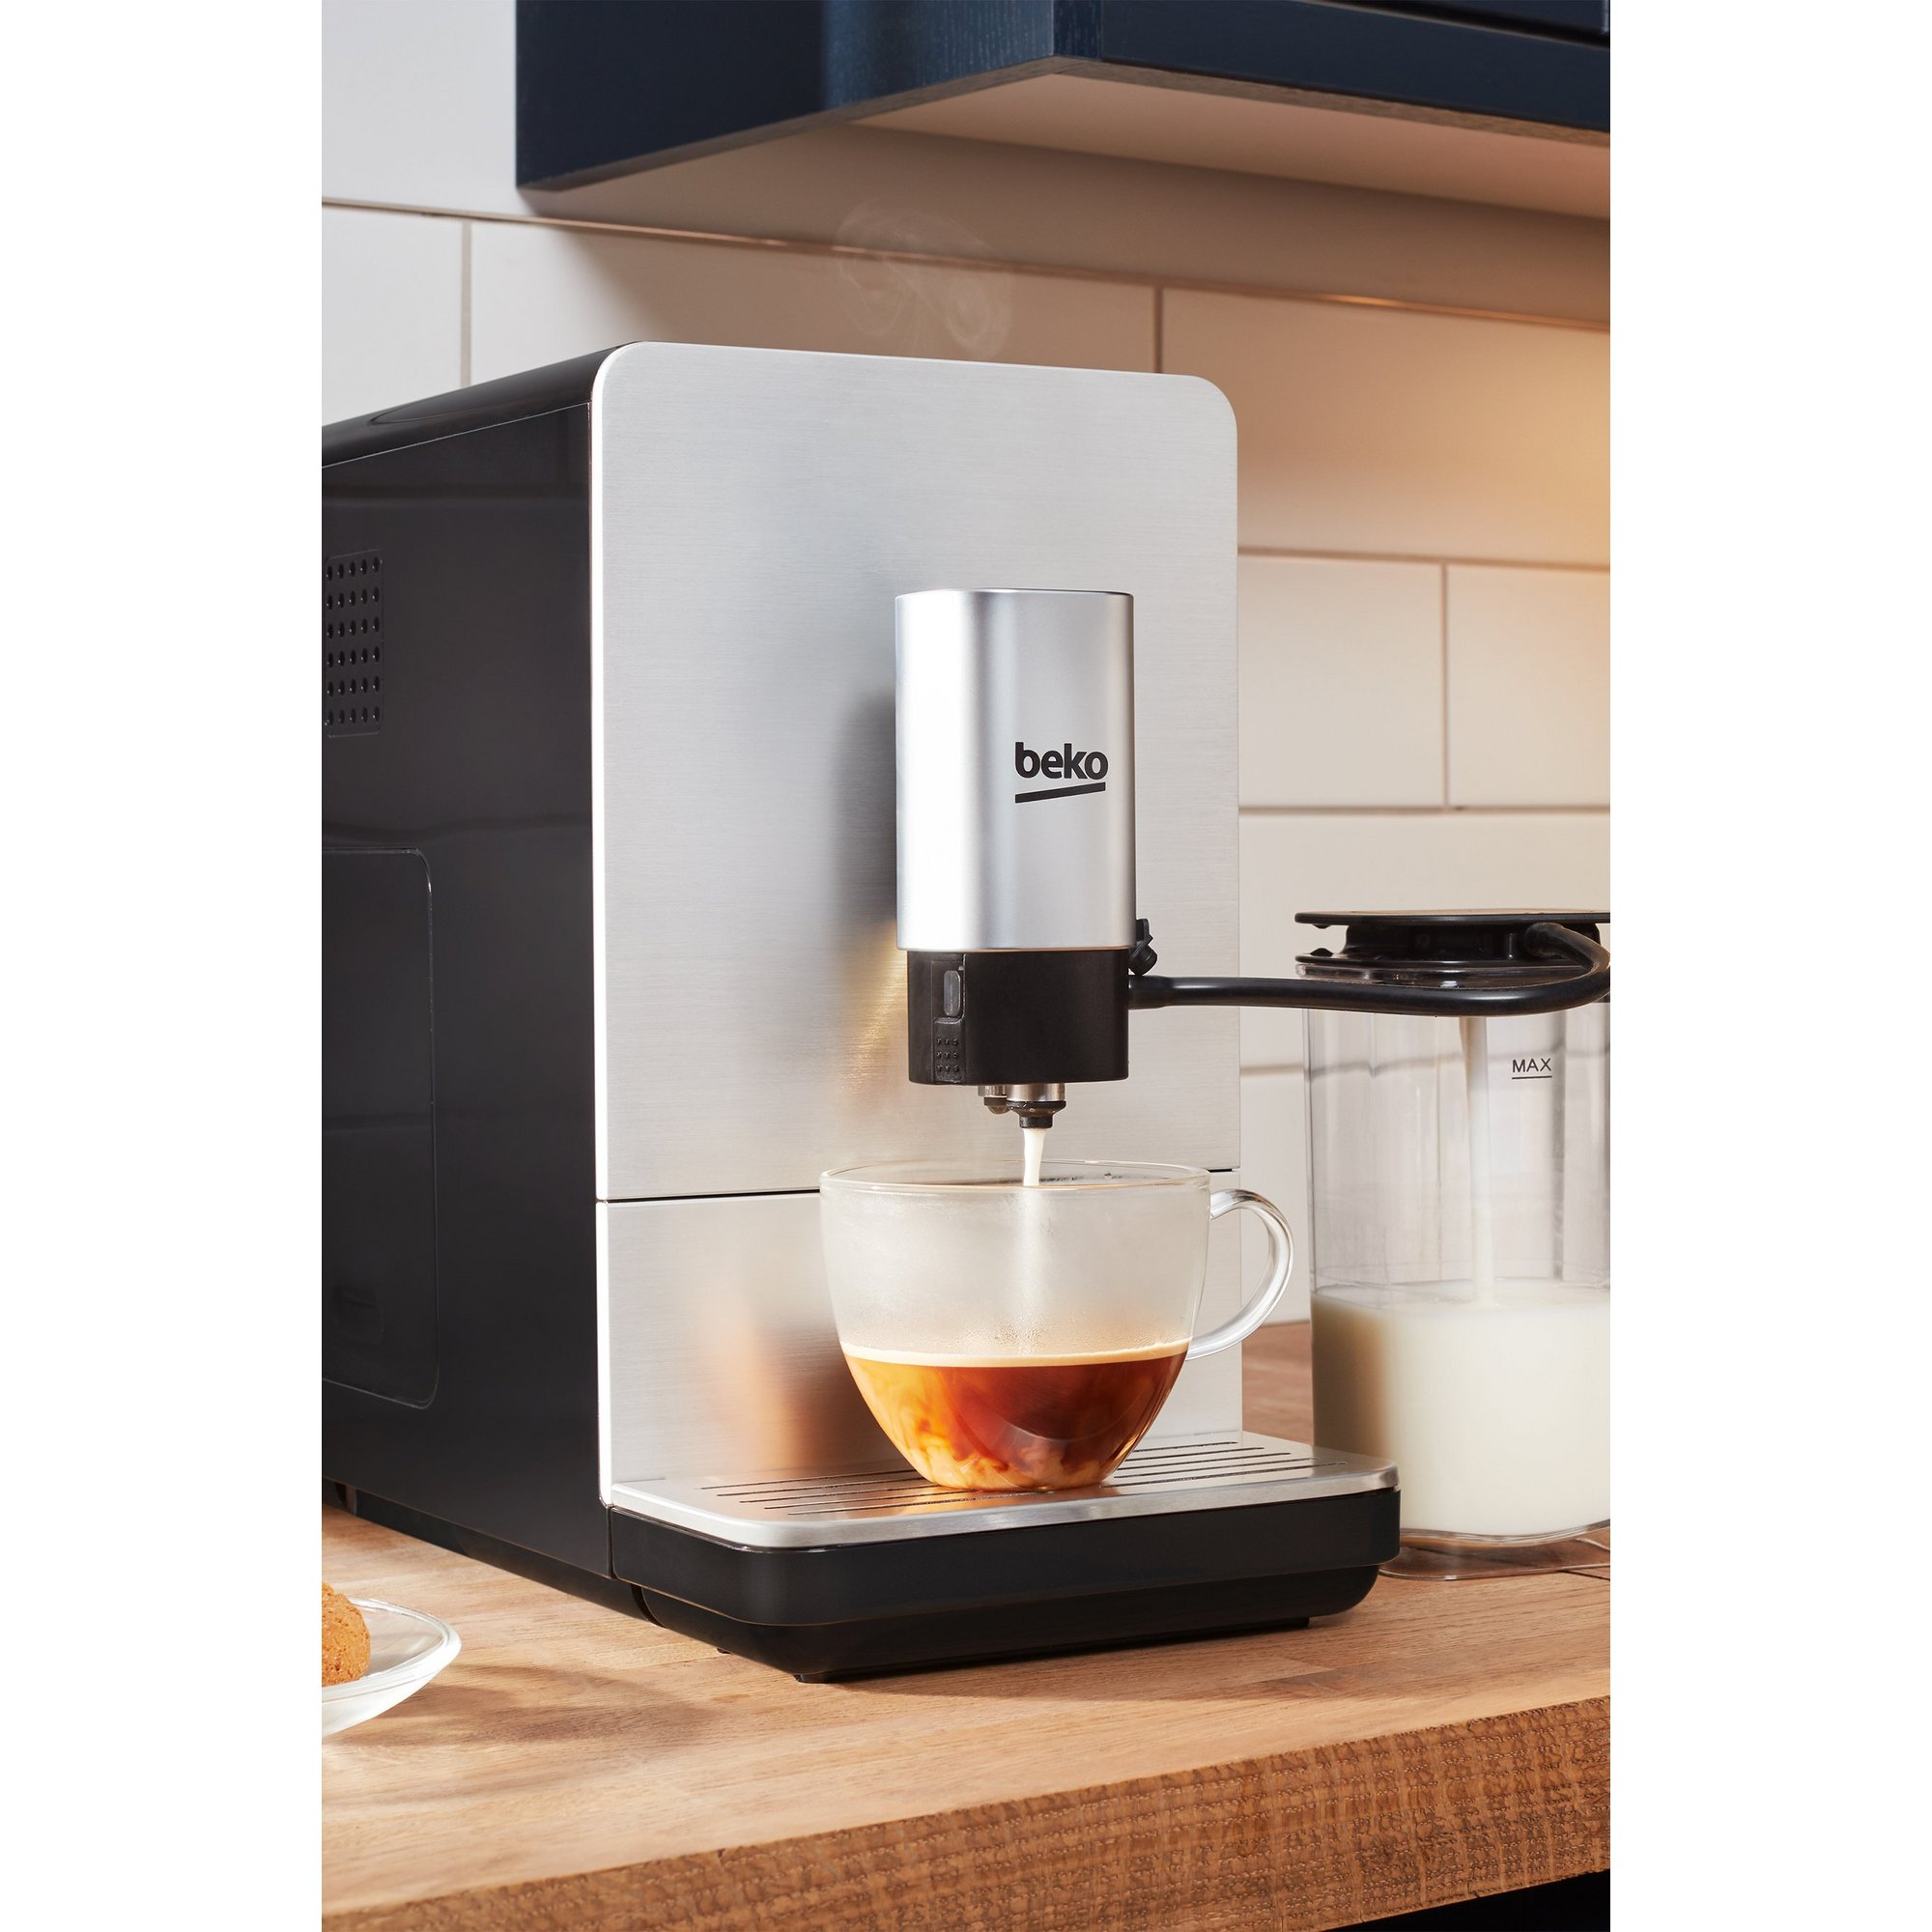 Image of Beko Bean to Cup Coffee Machine with Steam Wand